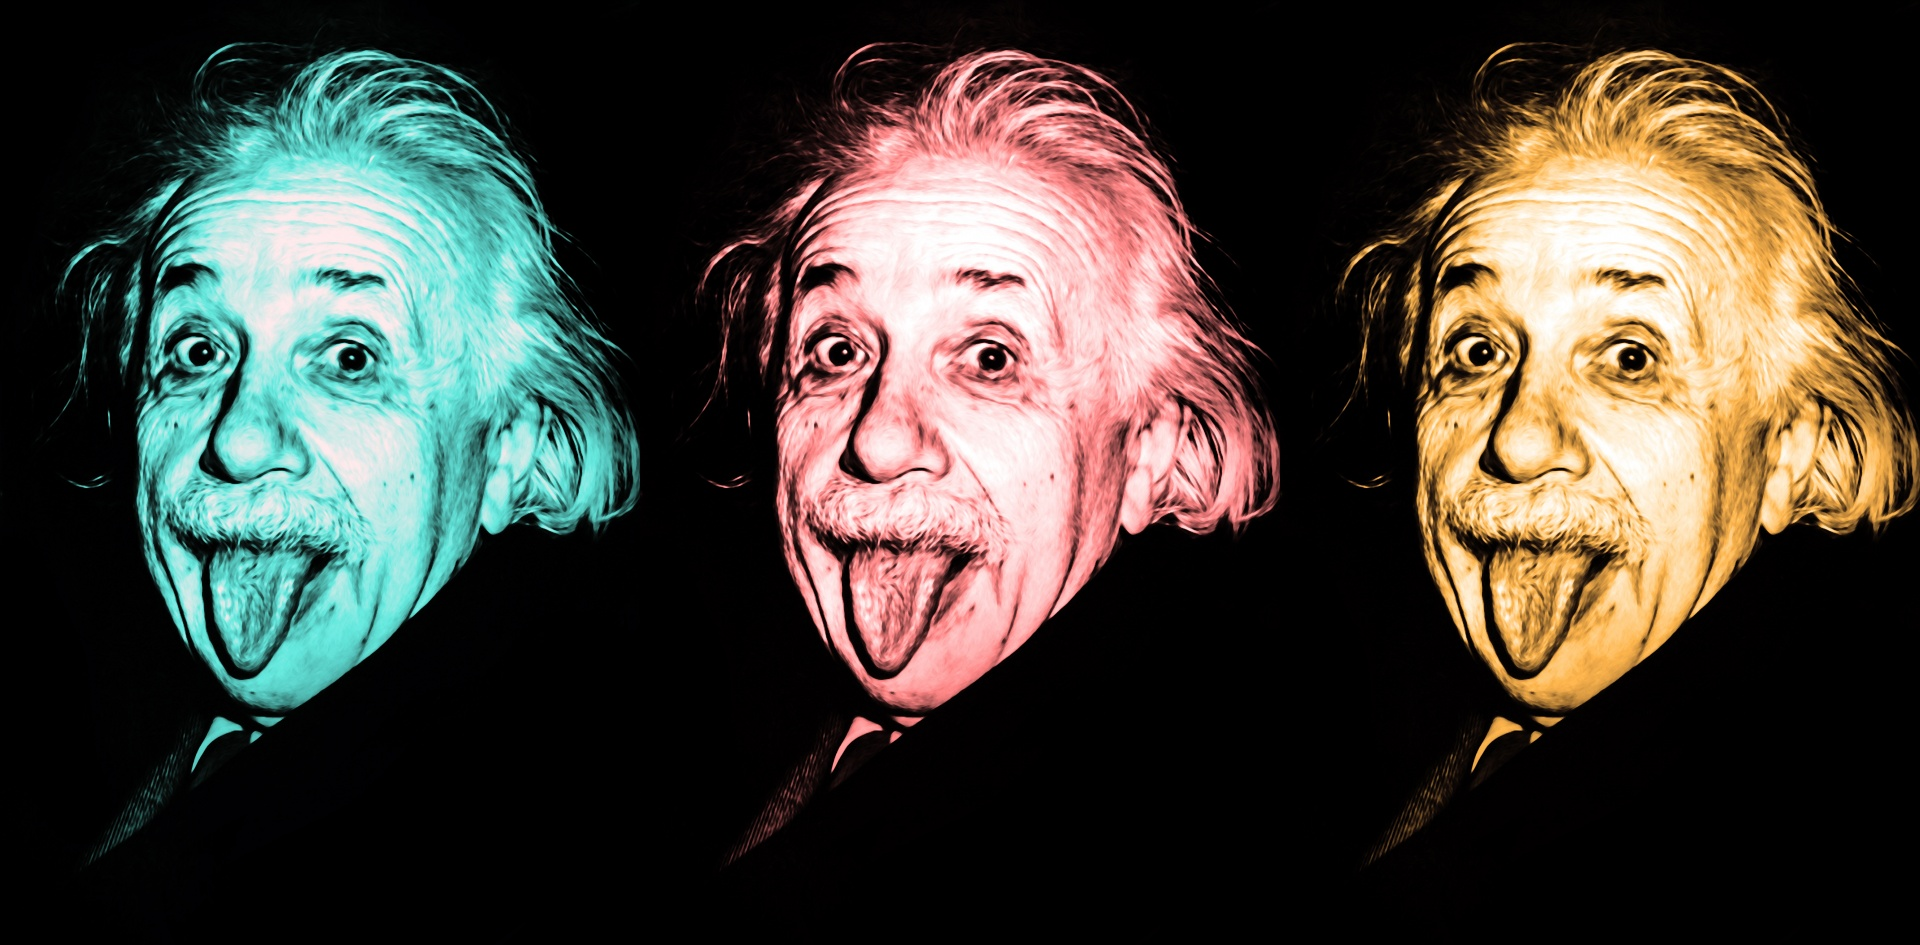 albert einstein,tongue,sticking out tongue,portrait,1950-1959,1951,adult,profesor,teacher,iq,oil,painting,art,man,men,people,albert einstein, oil painting,free pictures, free photos, free images, royalty free, free illustrations, public domain